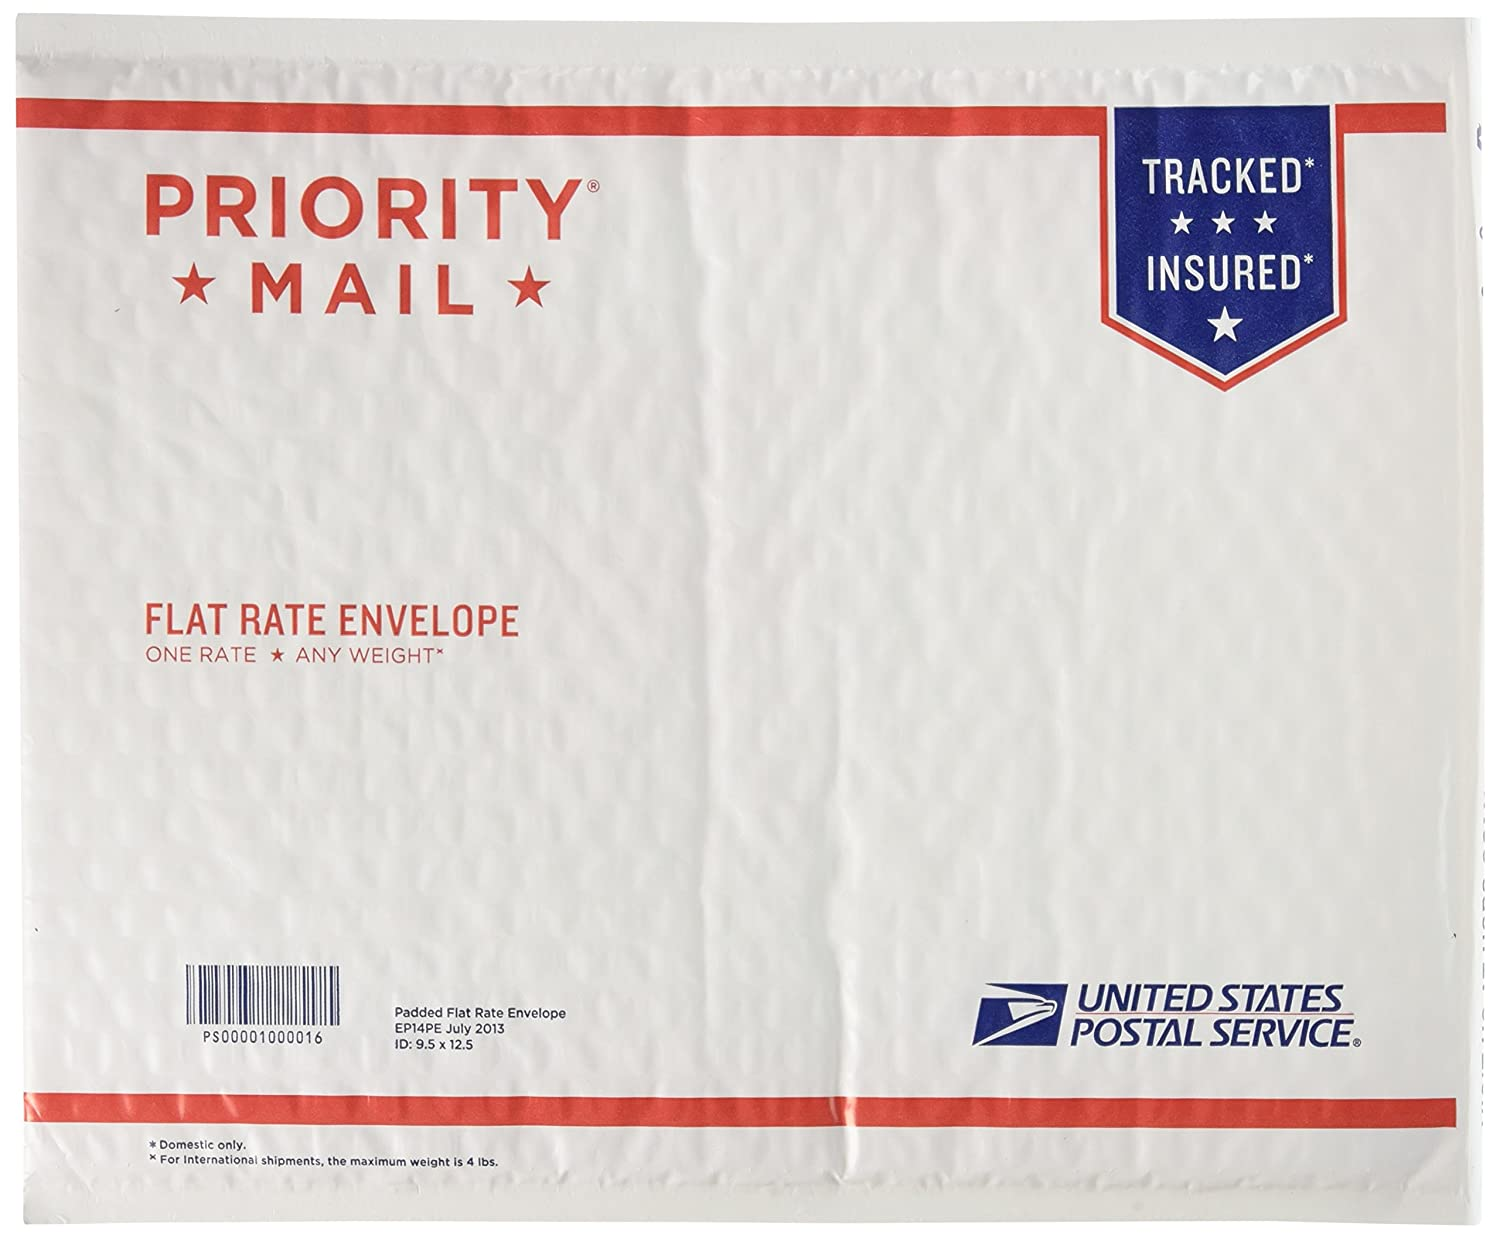 USPS x Priority Mail 12 1/2 x USPS 9 1/2 Padded Flat Rate Envelope x 10 units by USPS a4094d